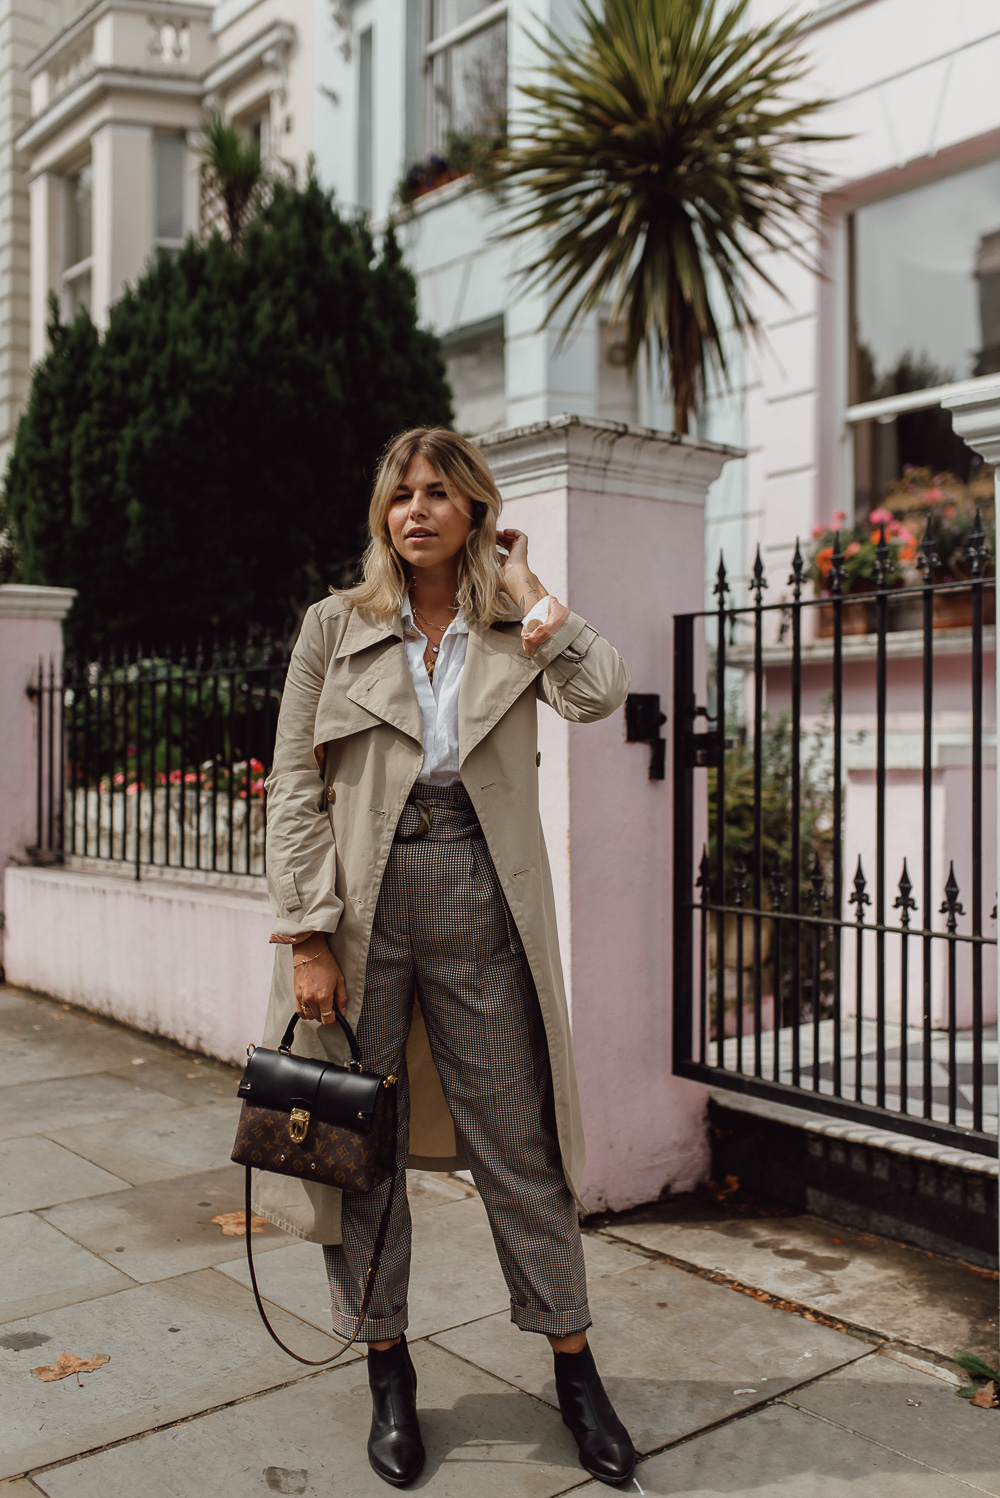 Image for [Outfit] London Streetstyle mit Trenchcoat & Bundfaltenhose